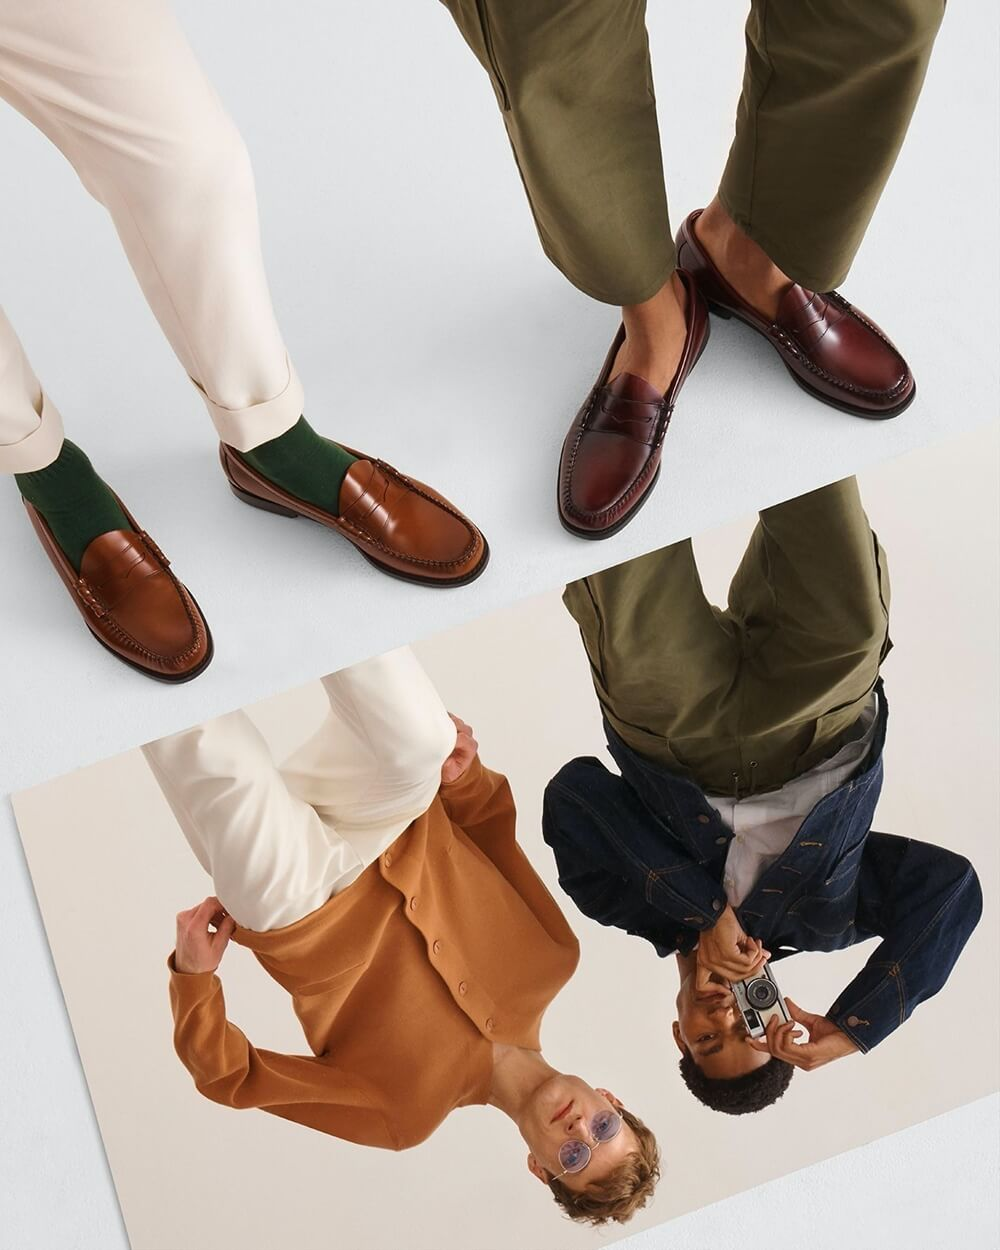 Best men's loafers in 2020